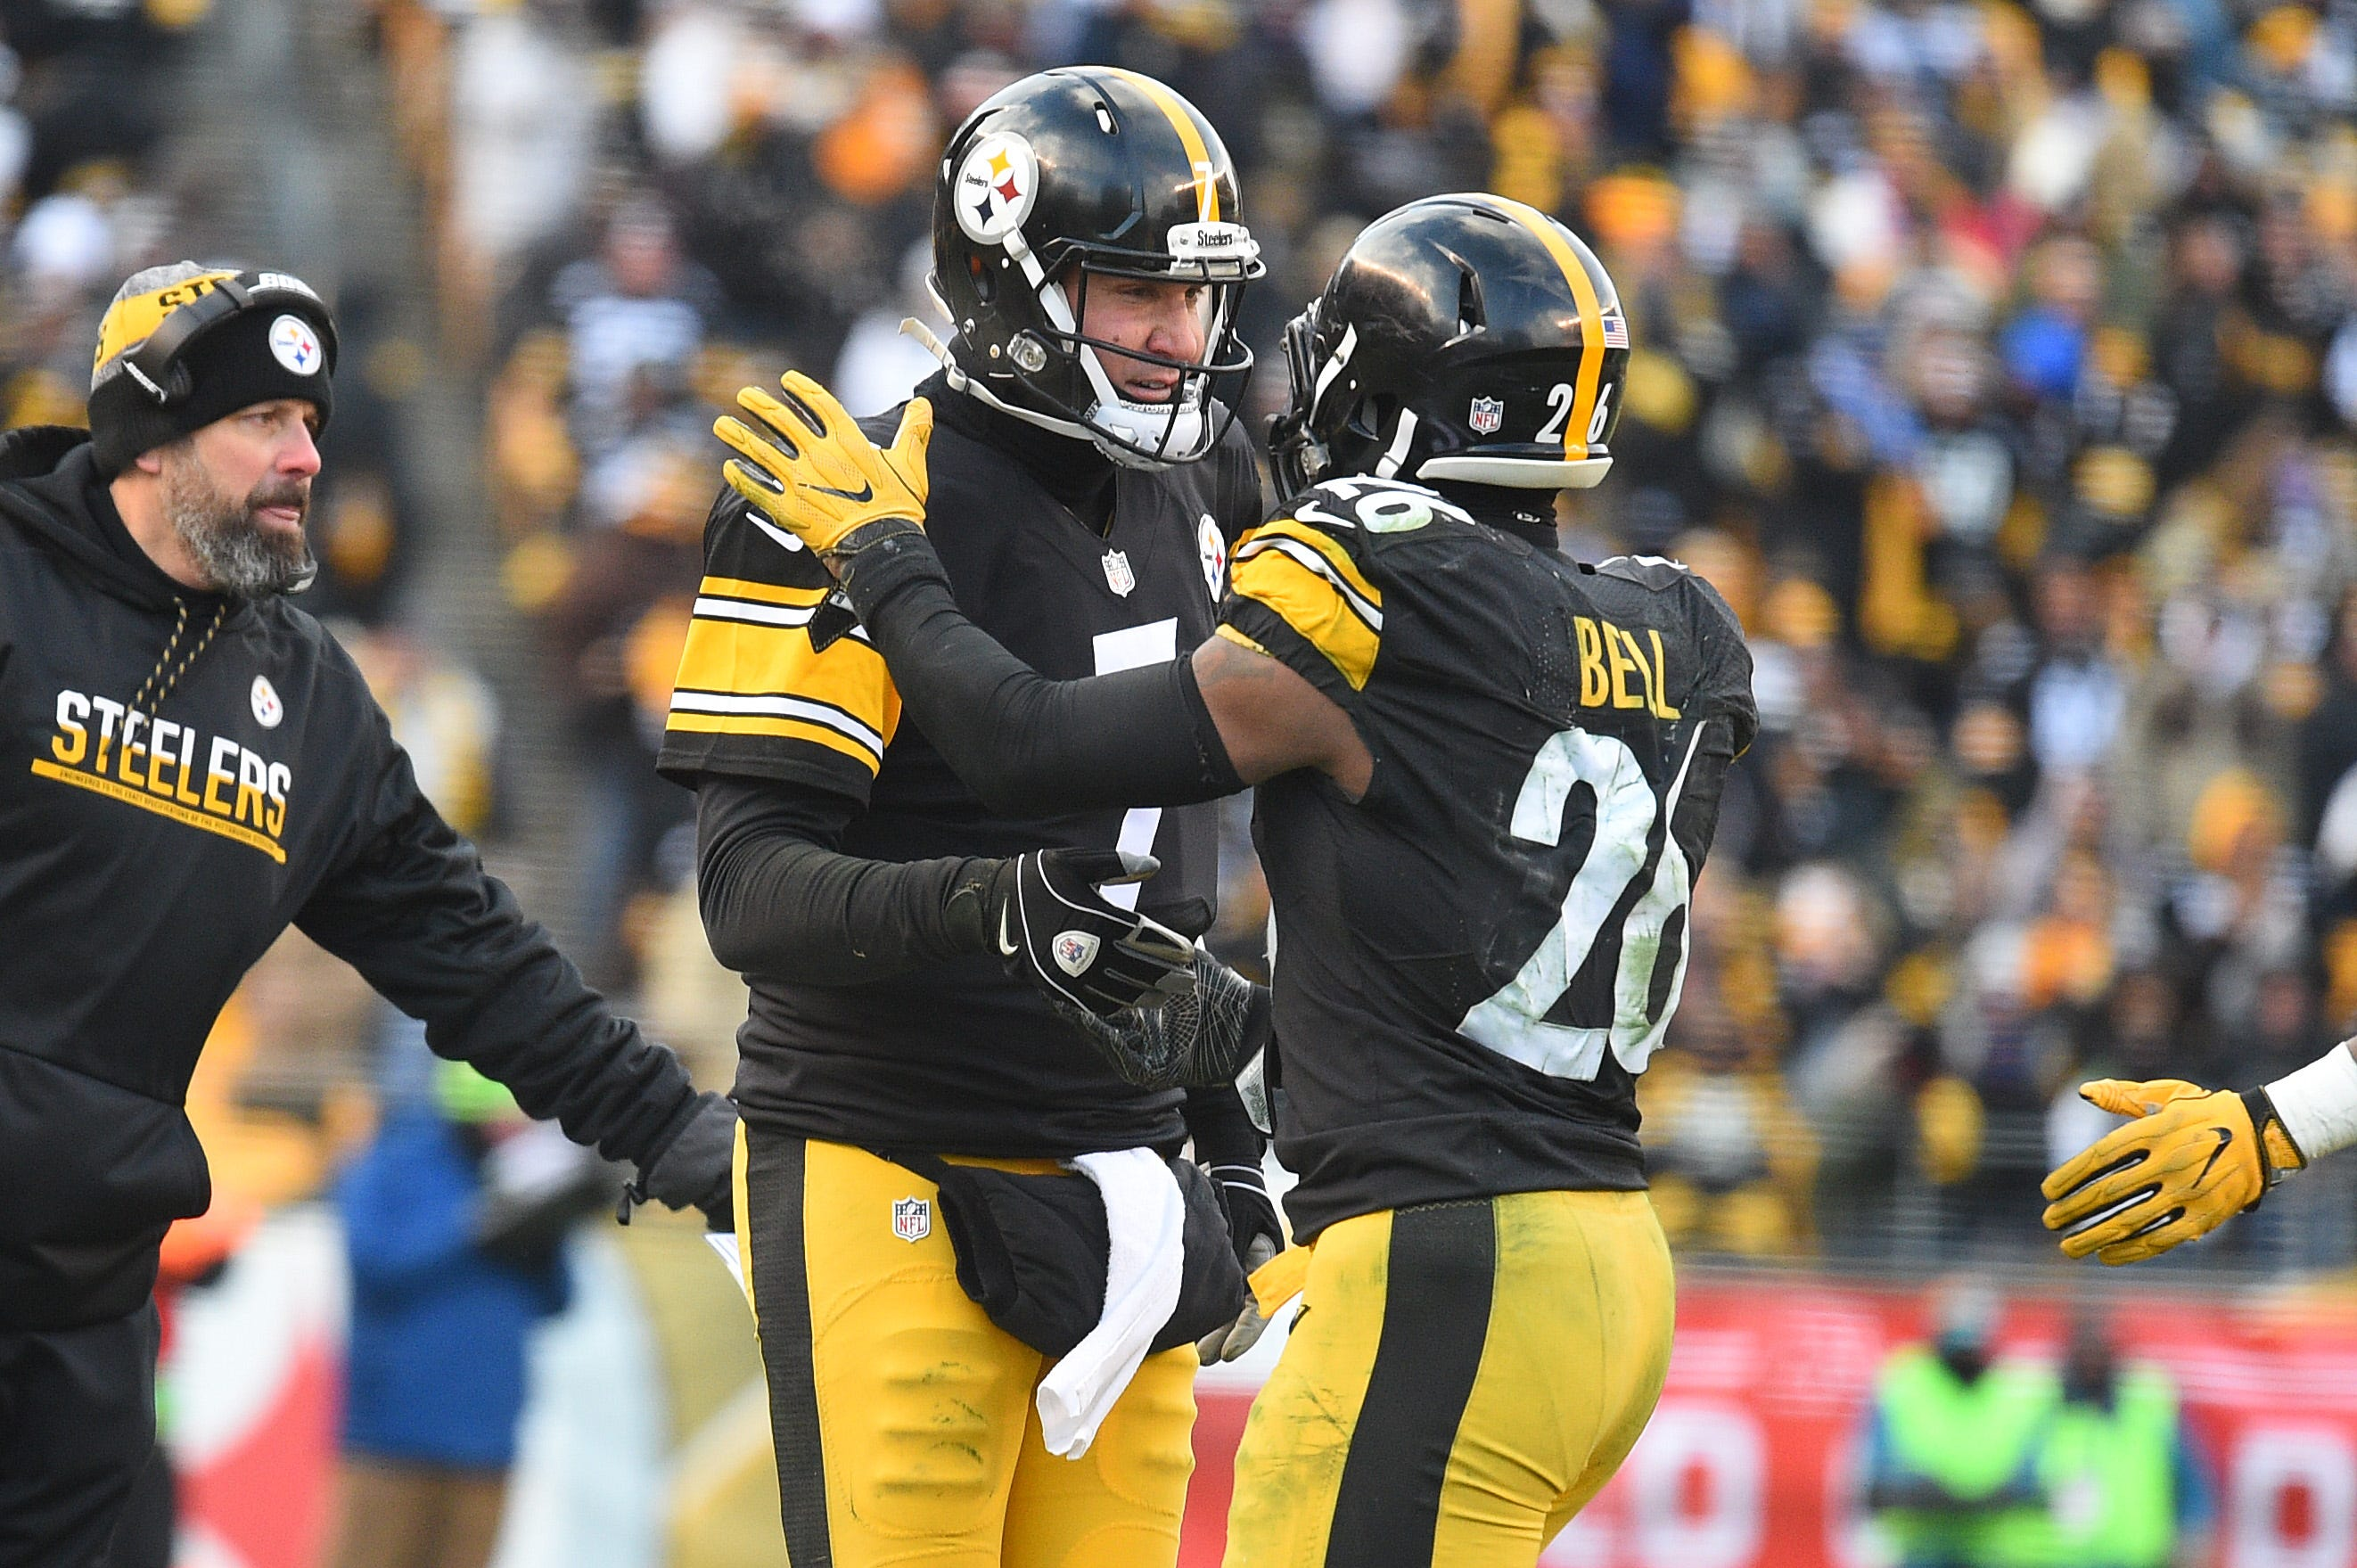 Steelers' Ben Roethlisberger texted Le'Veon Bell on Tuesday but never received reply